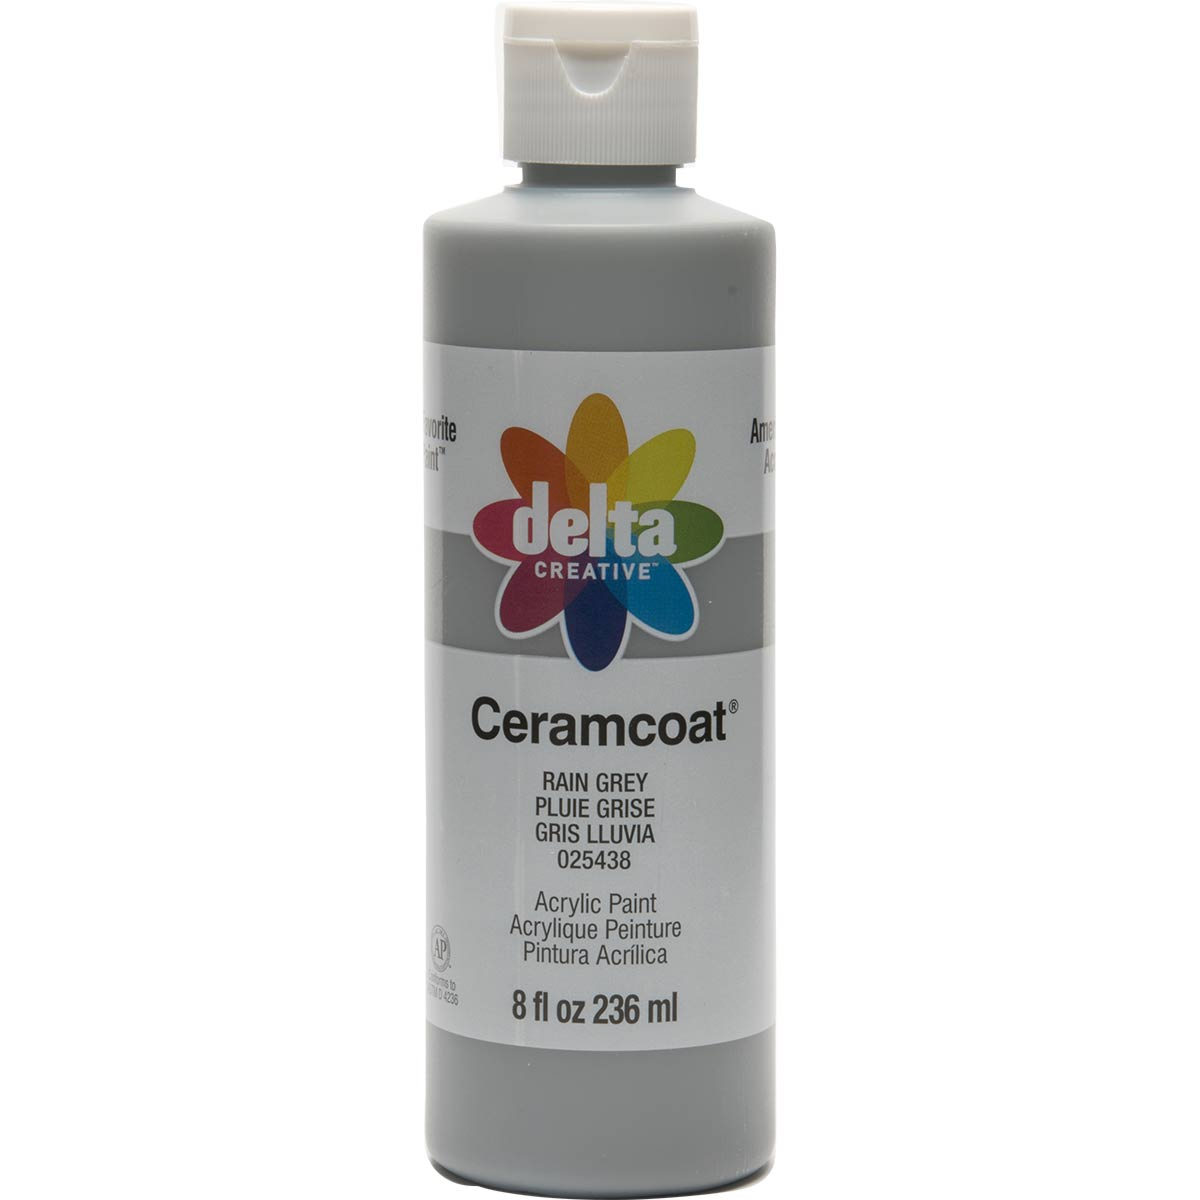 Delta Ceramcoat ® Acrylic Paint - Rain Grey, 8 oz. - 025438